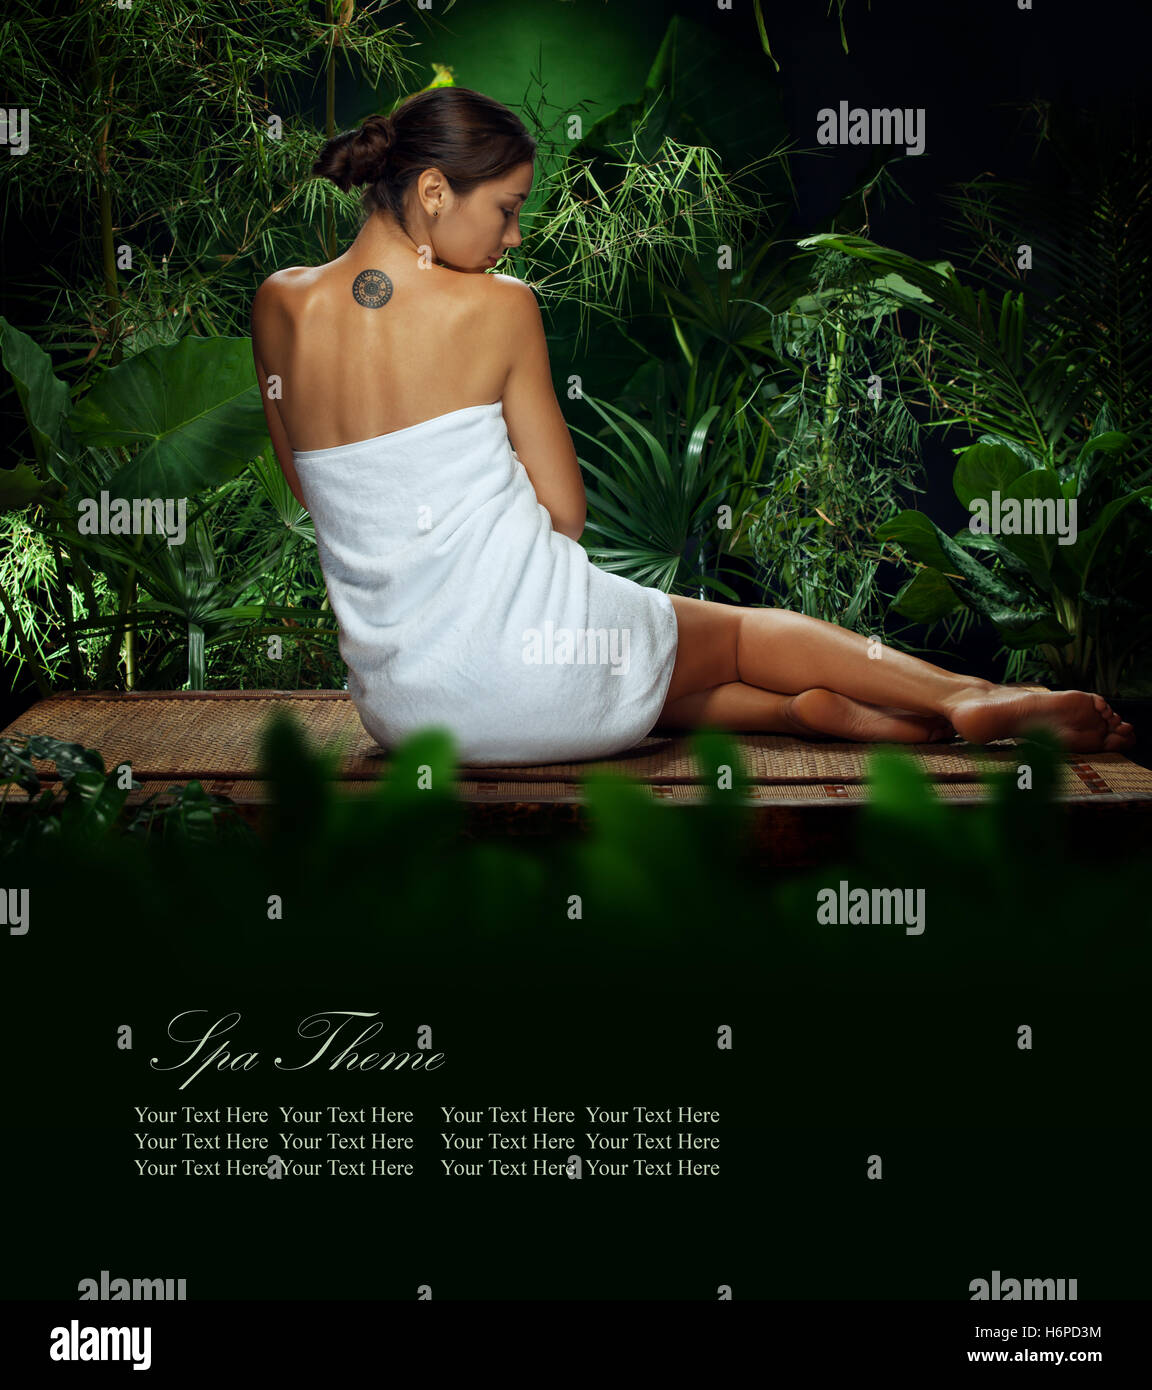 View of nice young woman meditating in spa tropic environment. Banner. - Stock Image